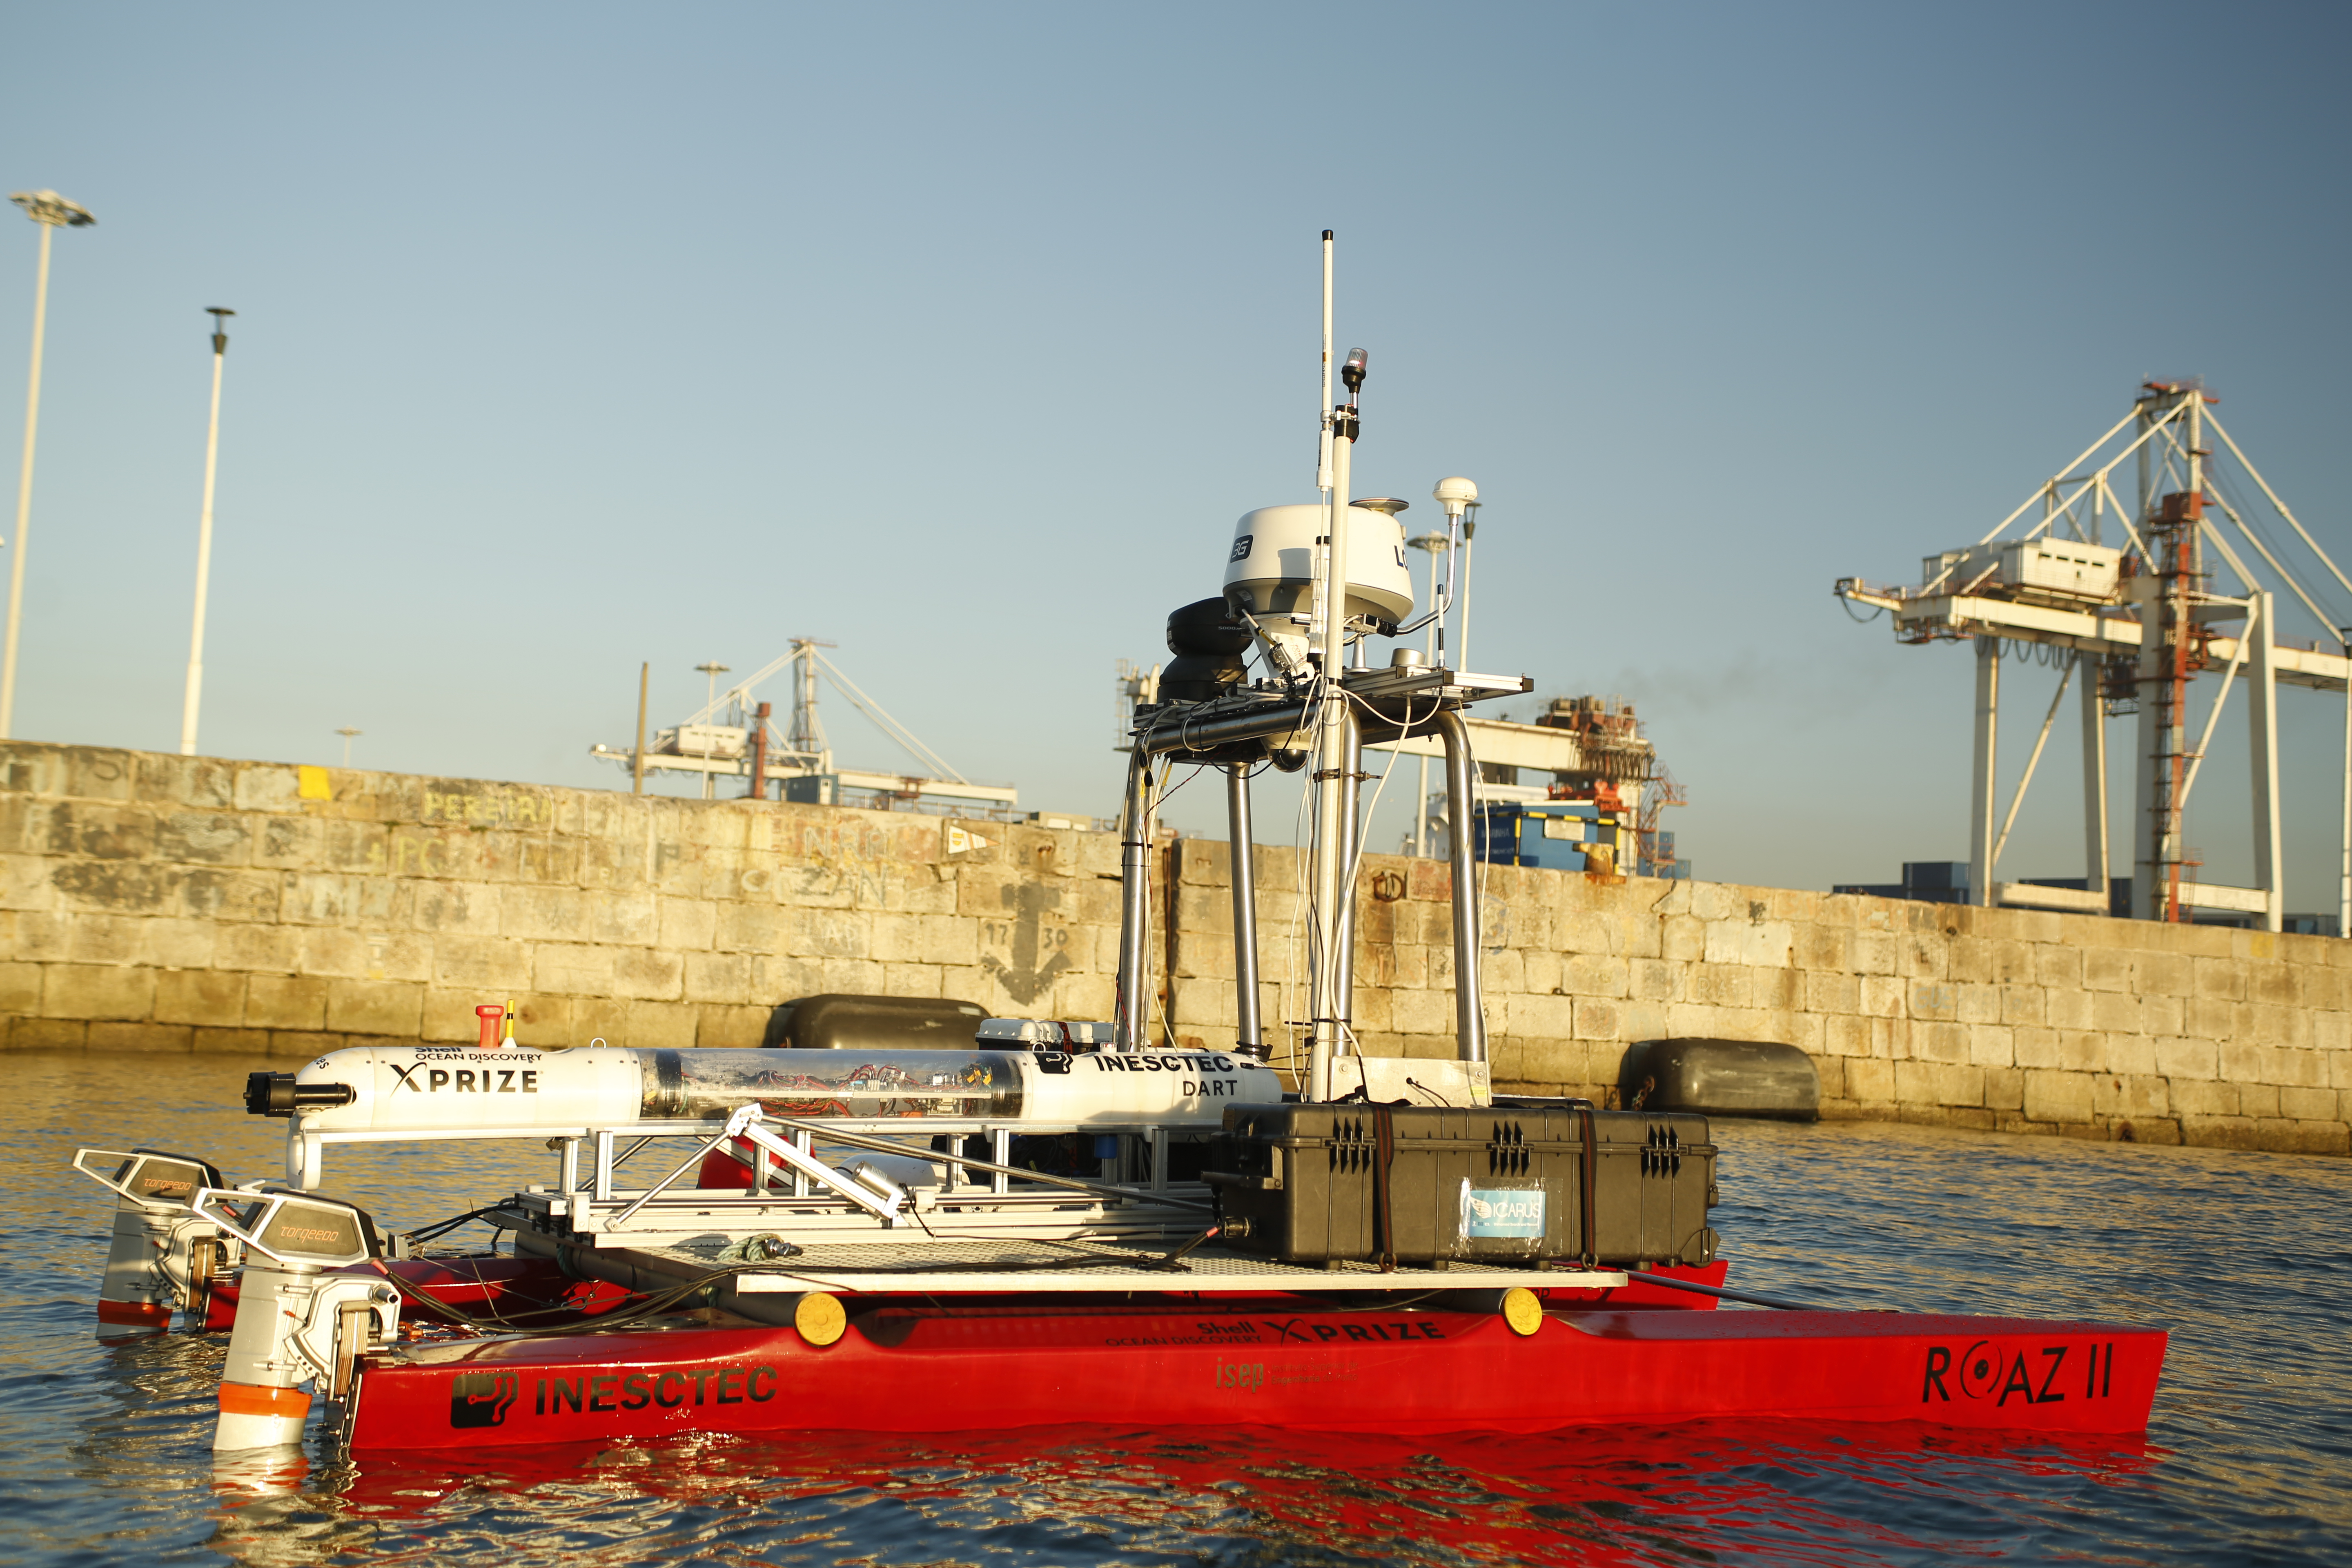 Shell Ocean Discovery XPRIZE Finalists Sail to Southern Greece for $7M